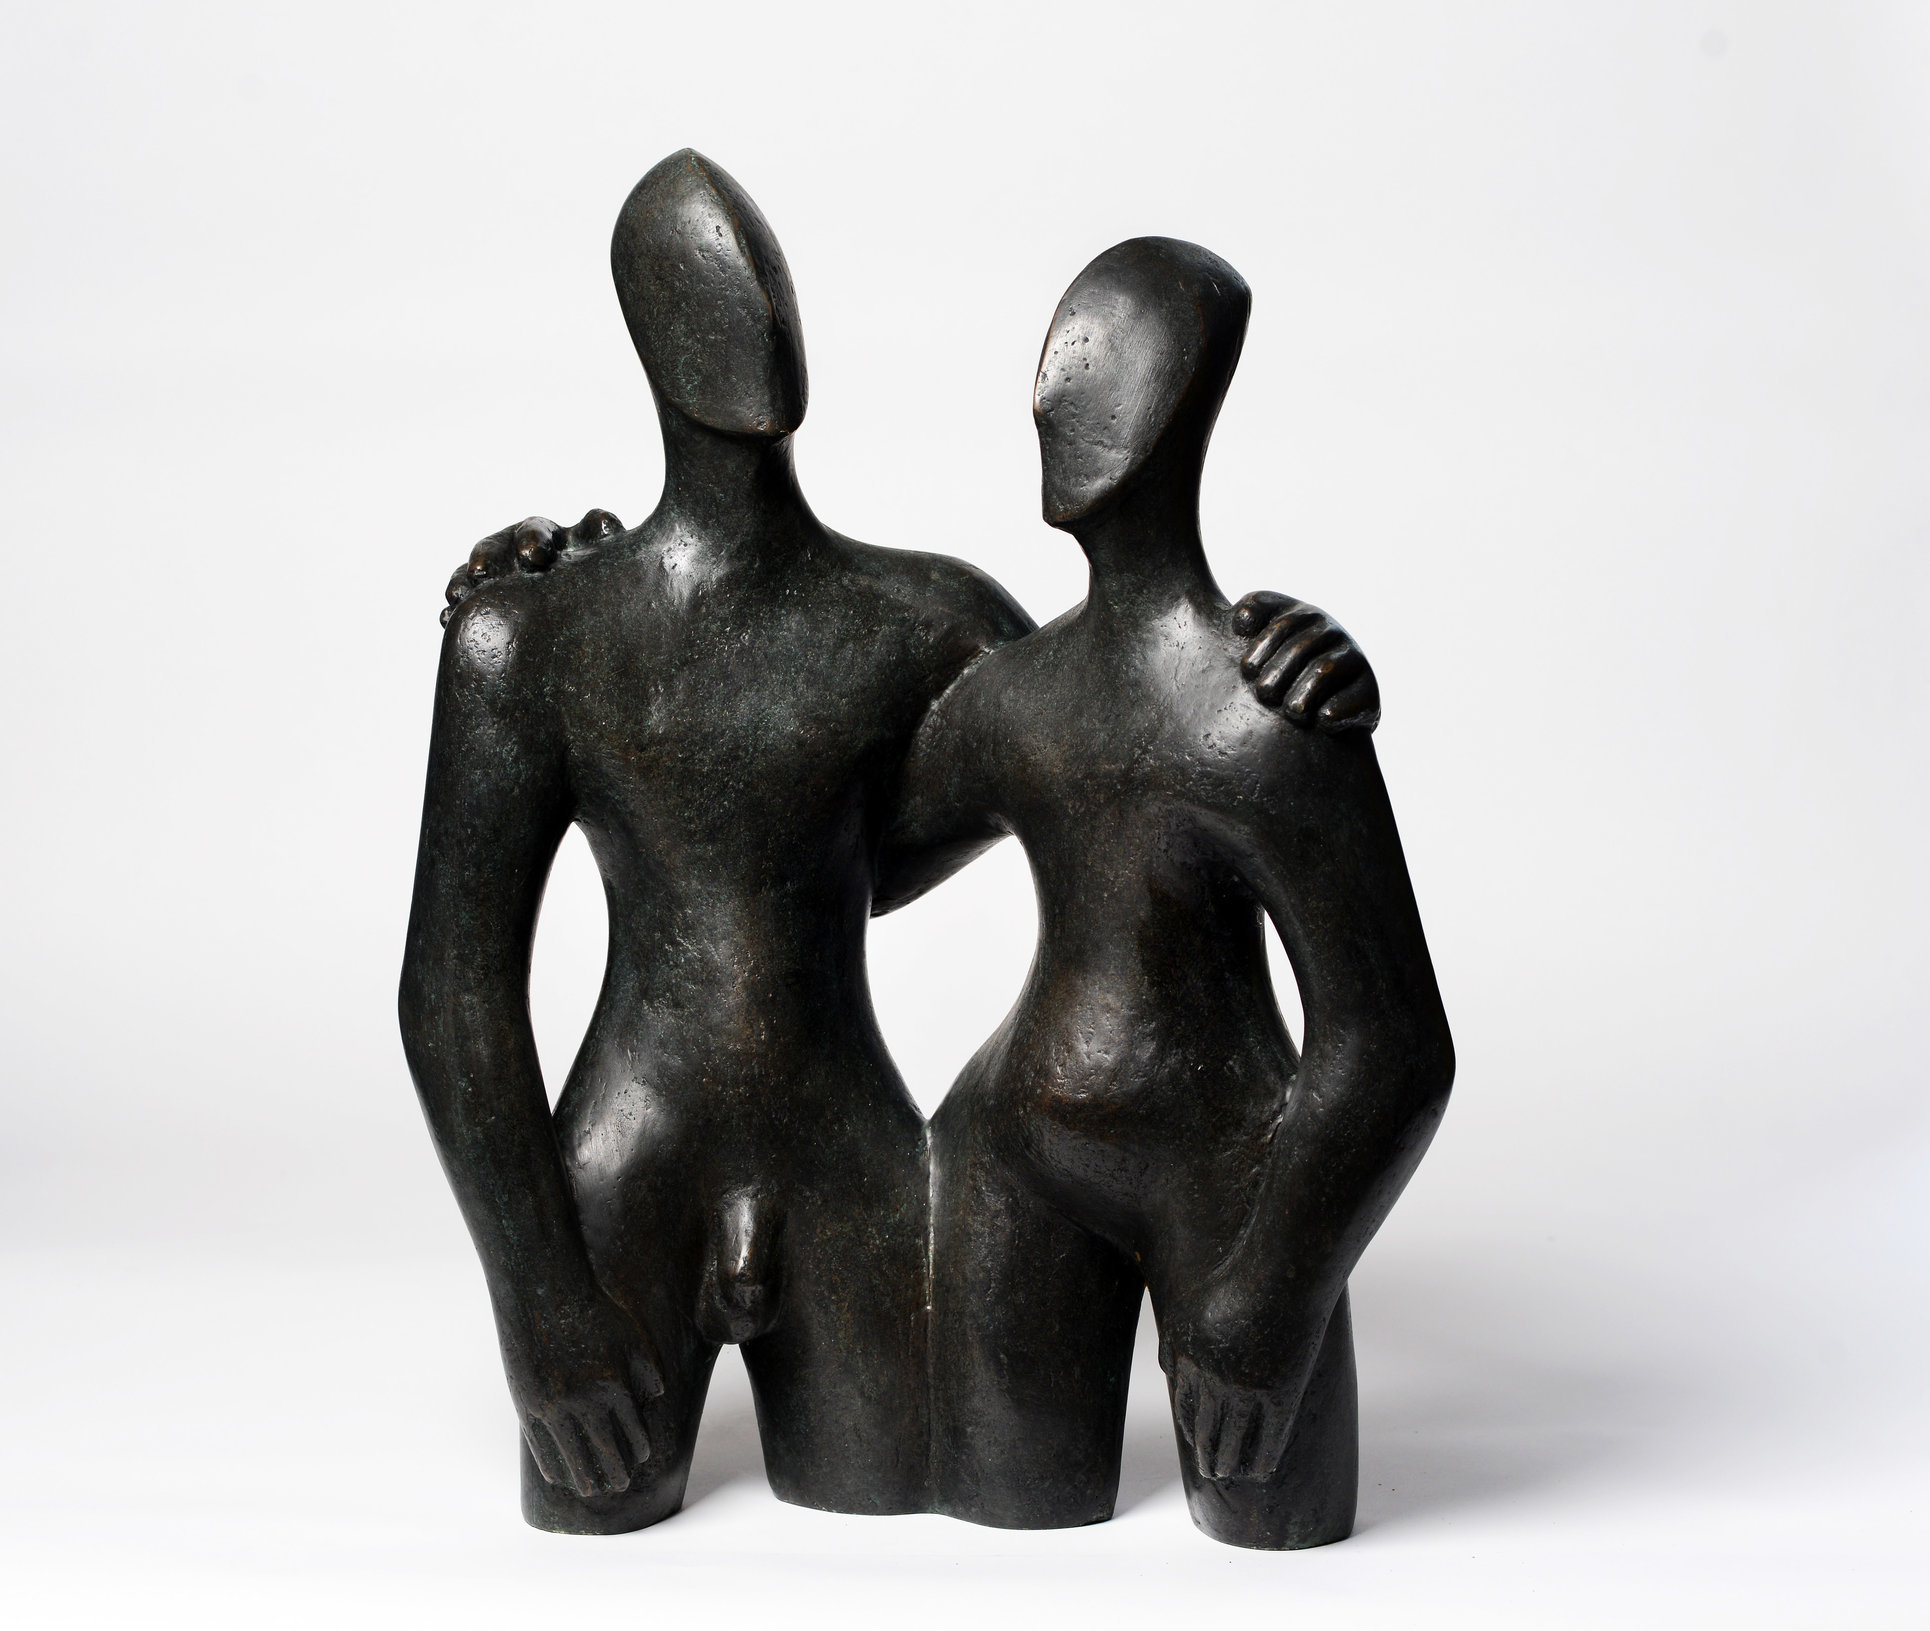 Etruscan Couple 2 Frontal view  04.08.16Bea021a.jpg